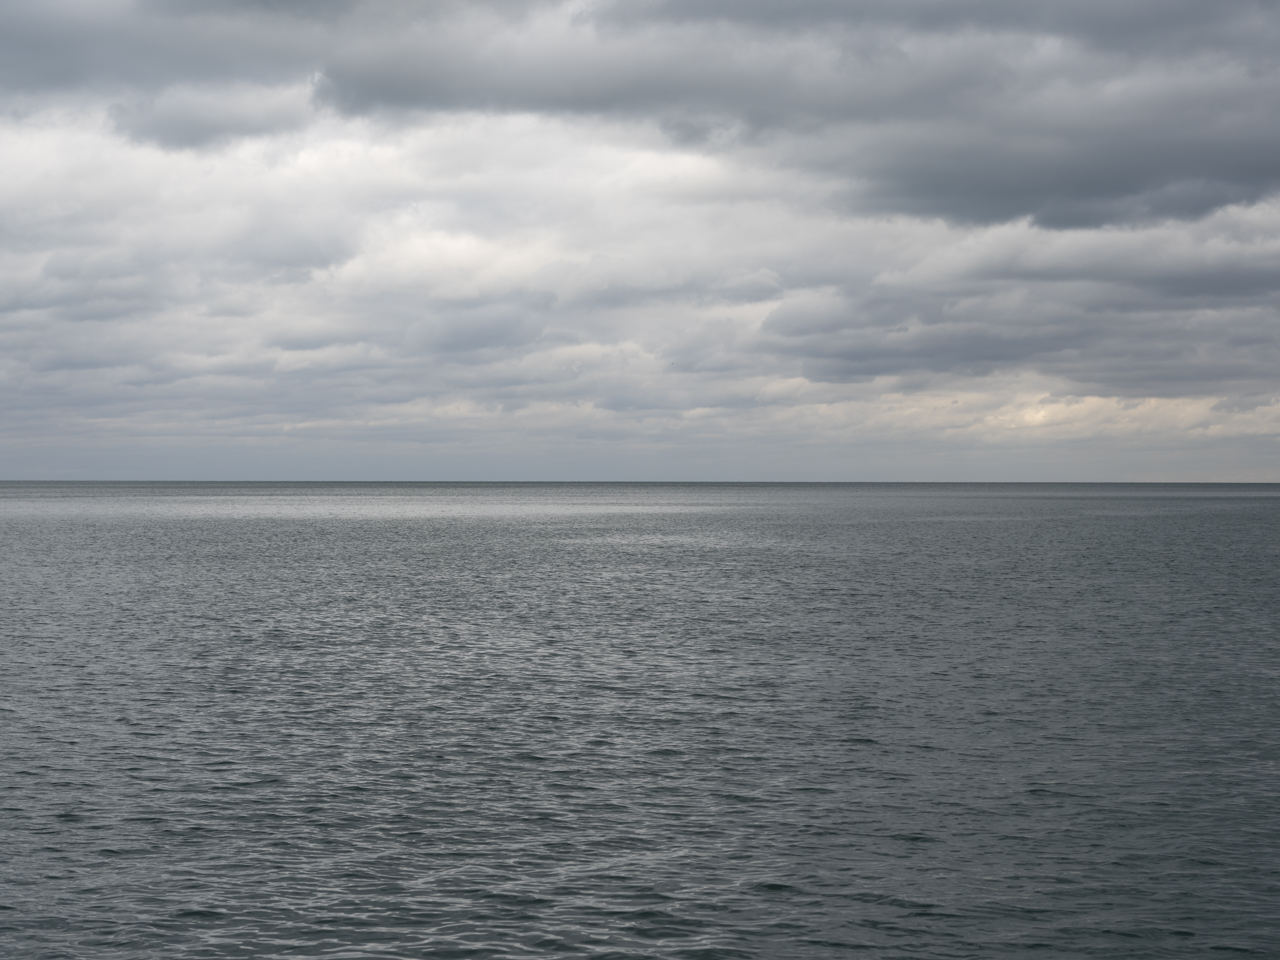 a mostly monotone gray morning on Lake Michigan with heavy cloud cover